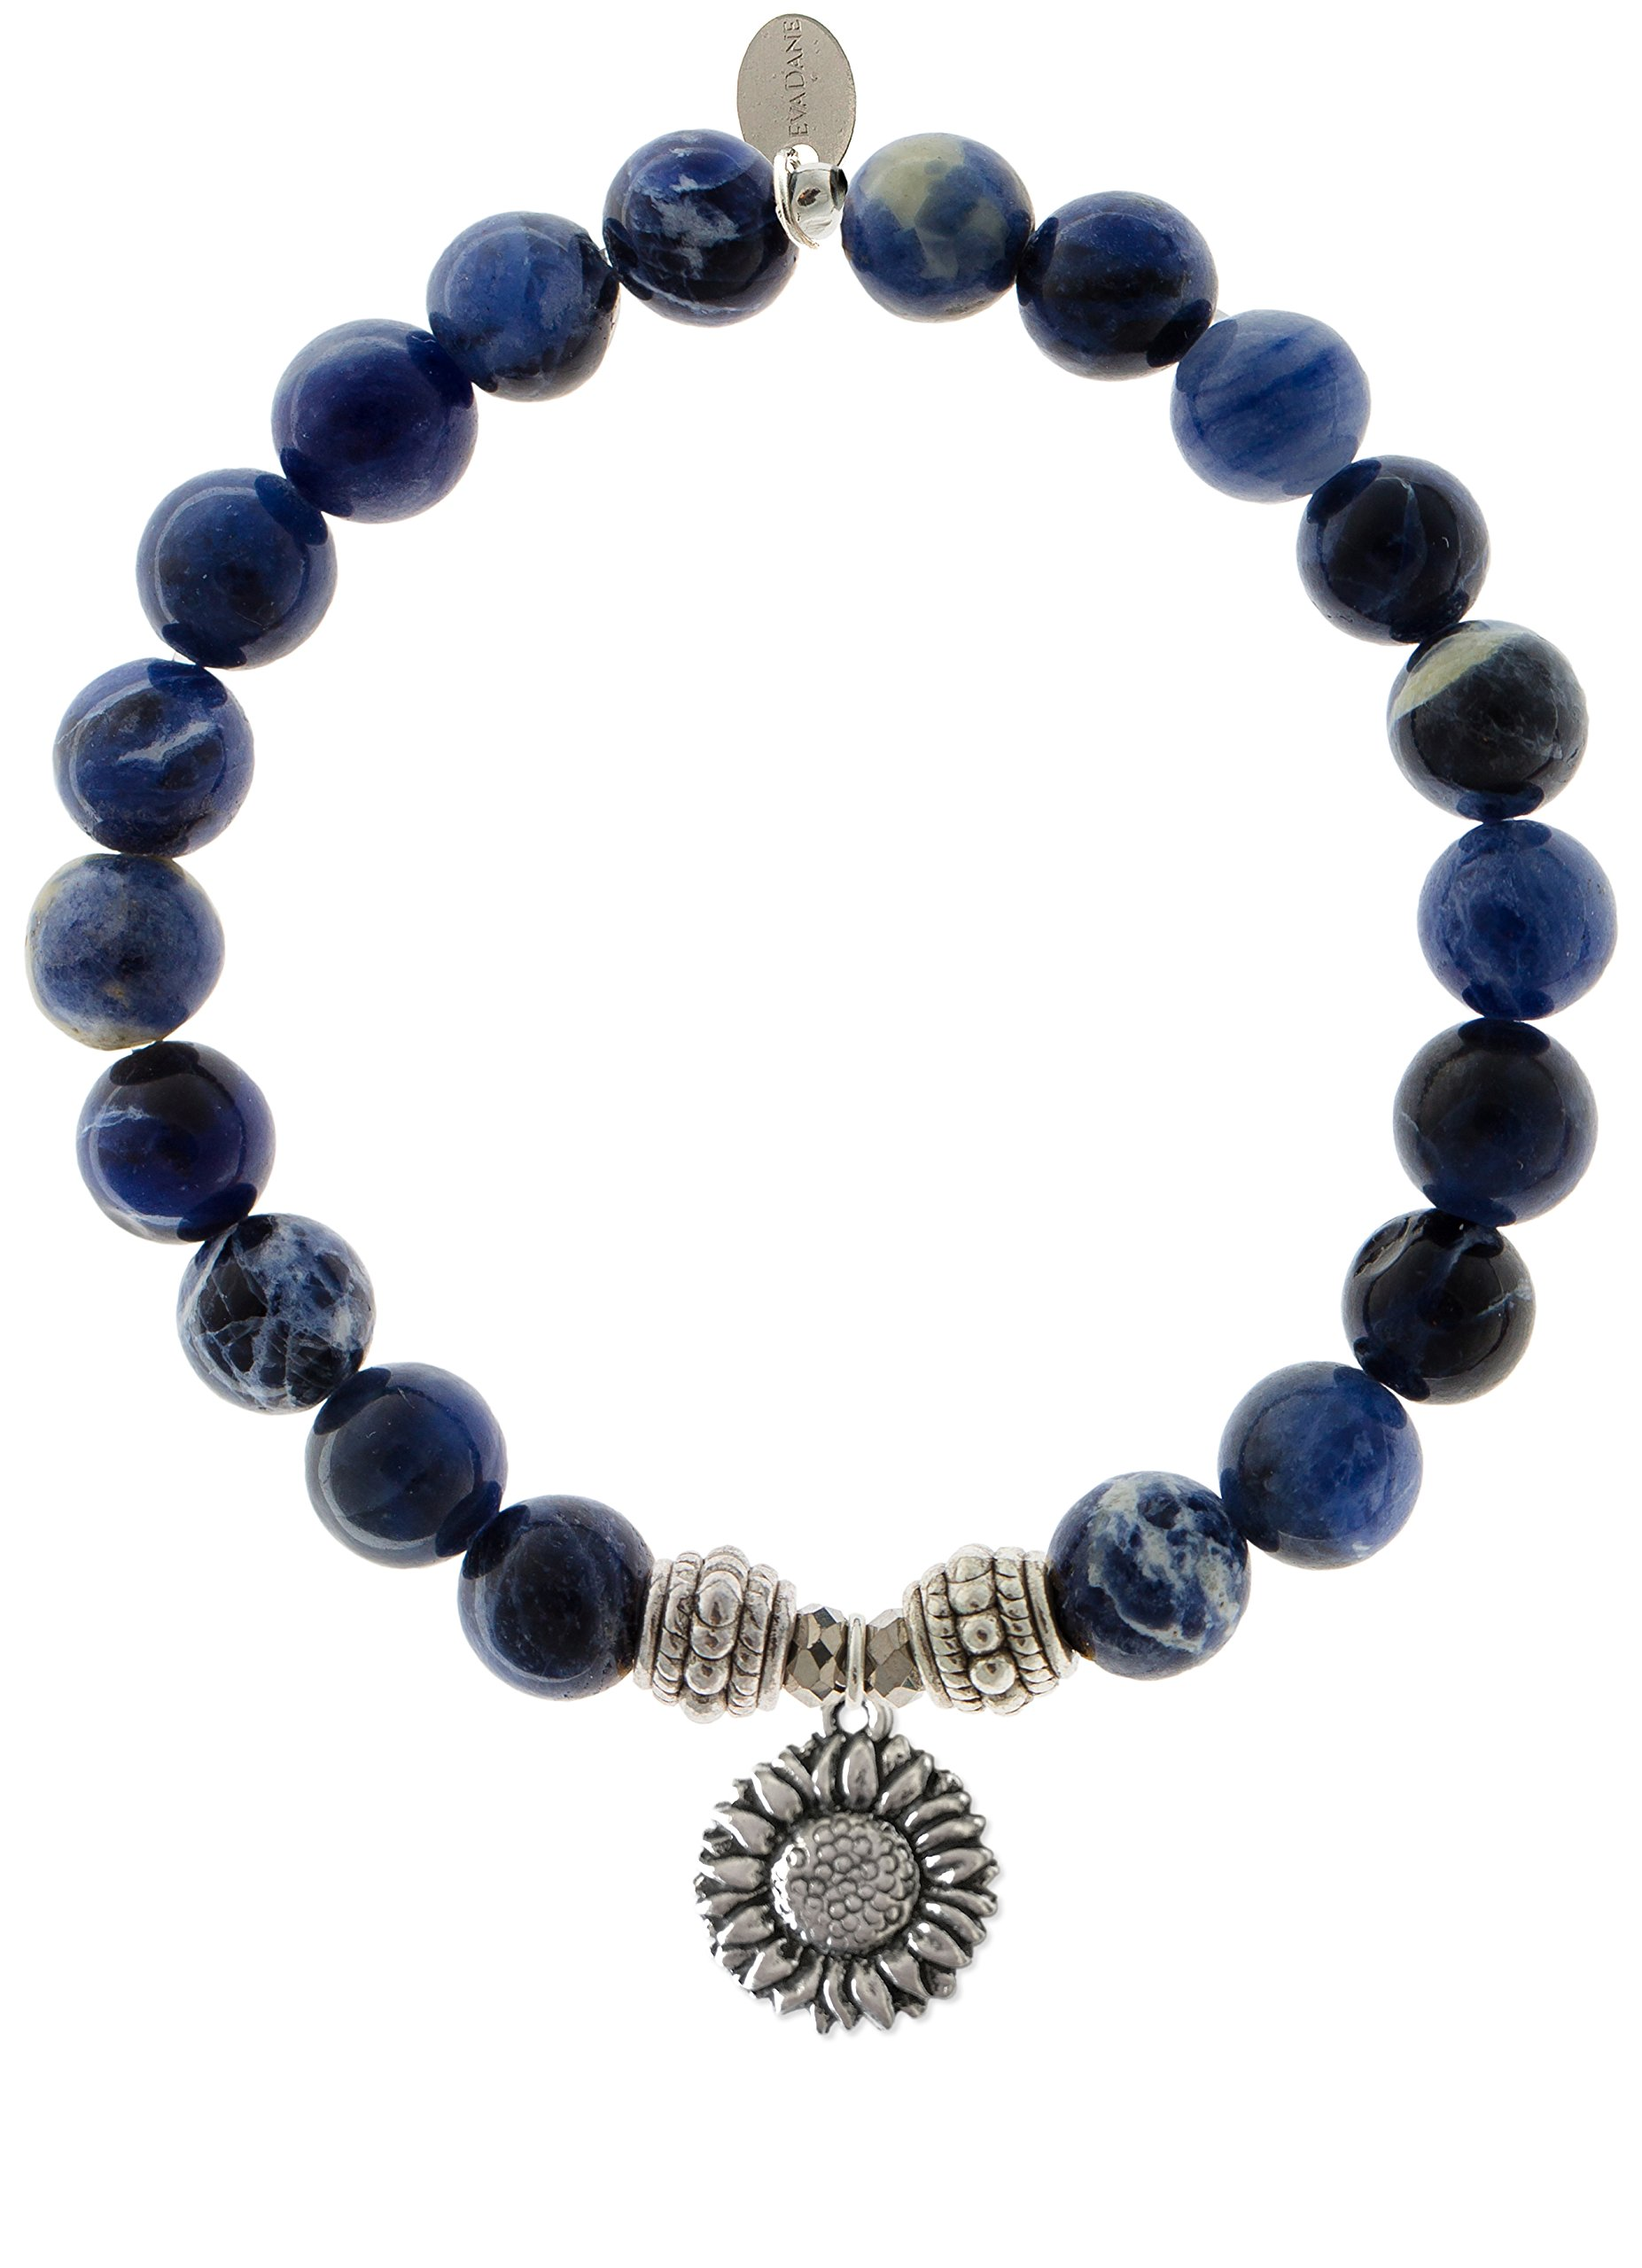 EvaDane Natural Sodalite Gemstone Rope Bead Sunflower Charm Stretch Bracelet - Size 7 Inch ( 1_SOD_S_R_SUF_7)